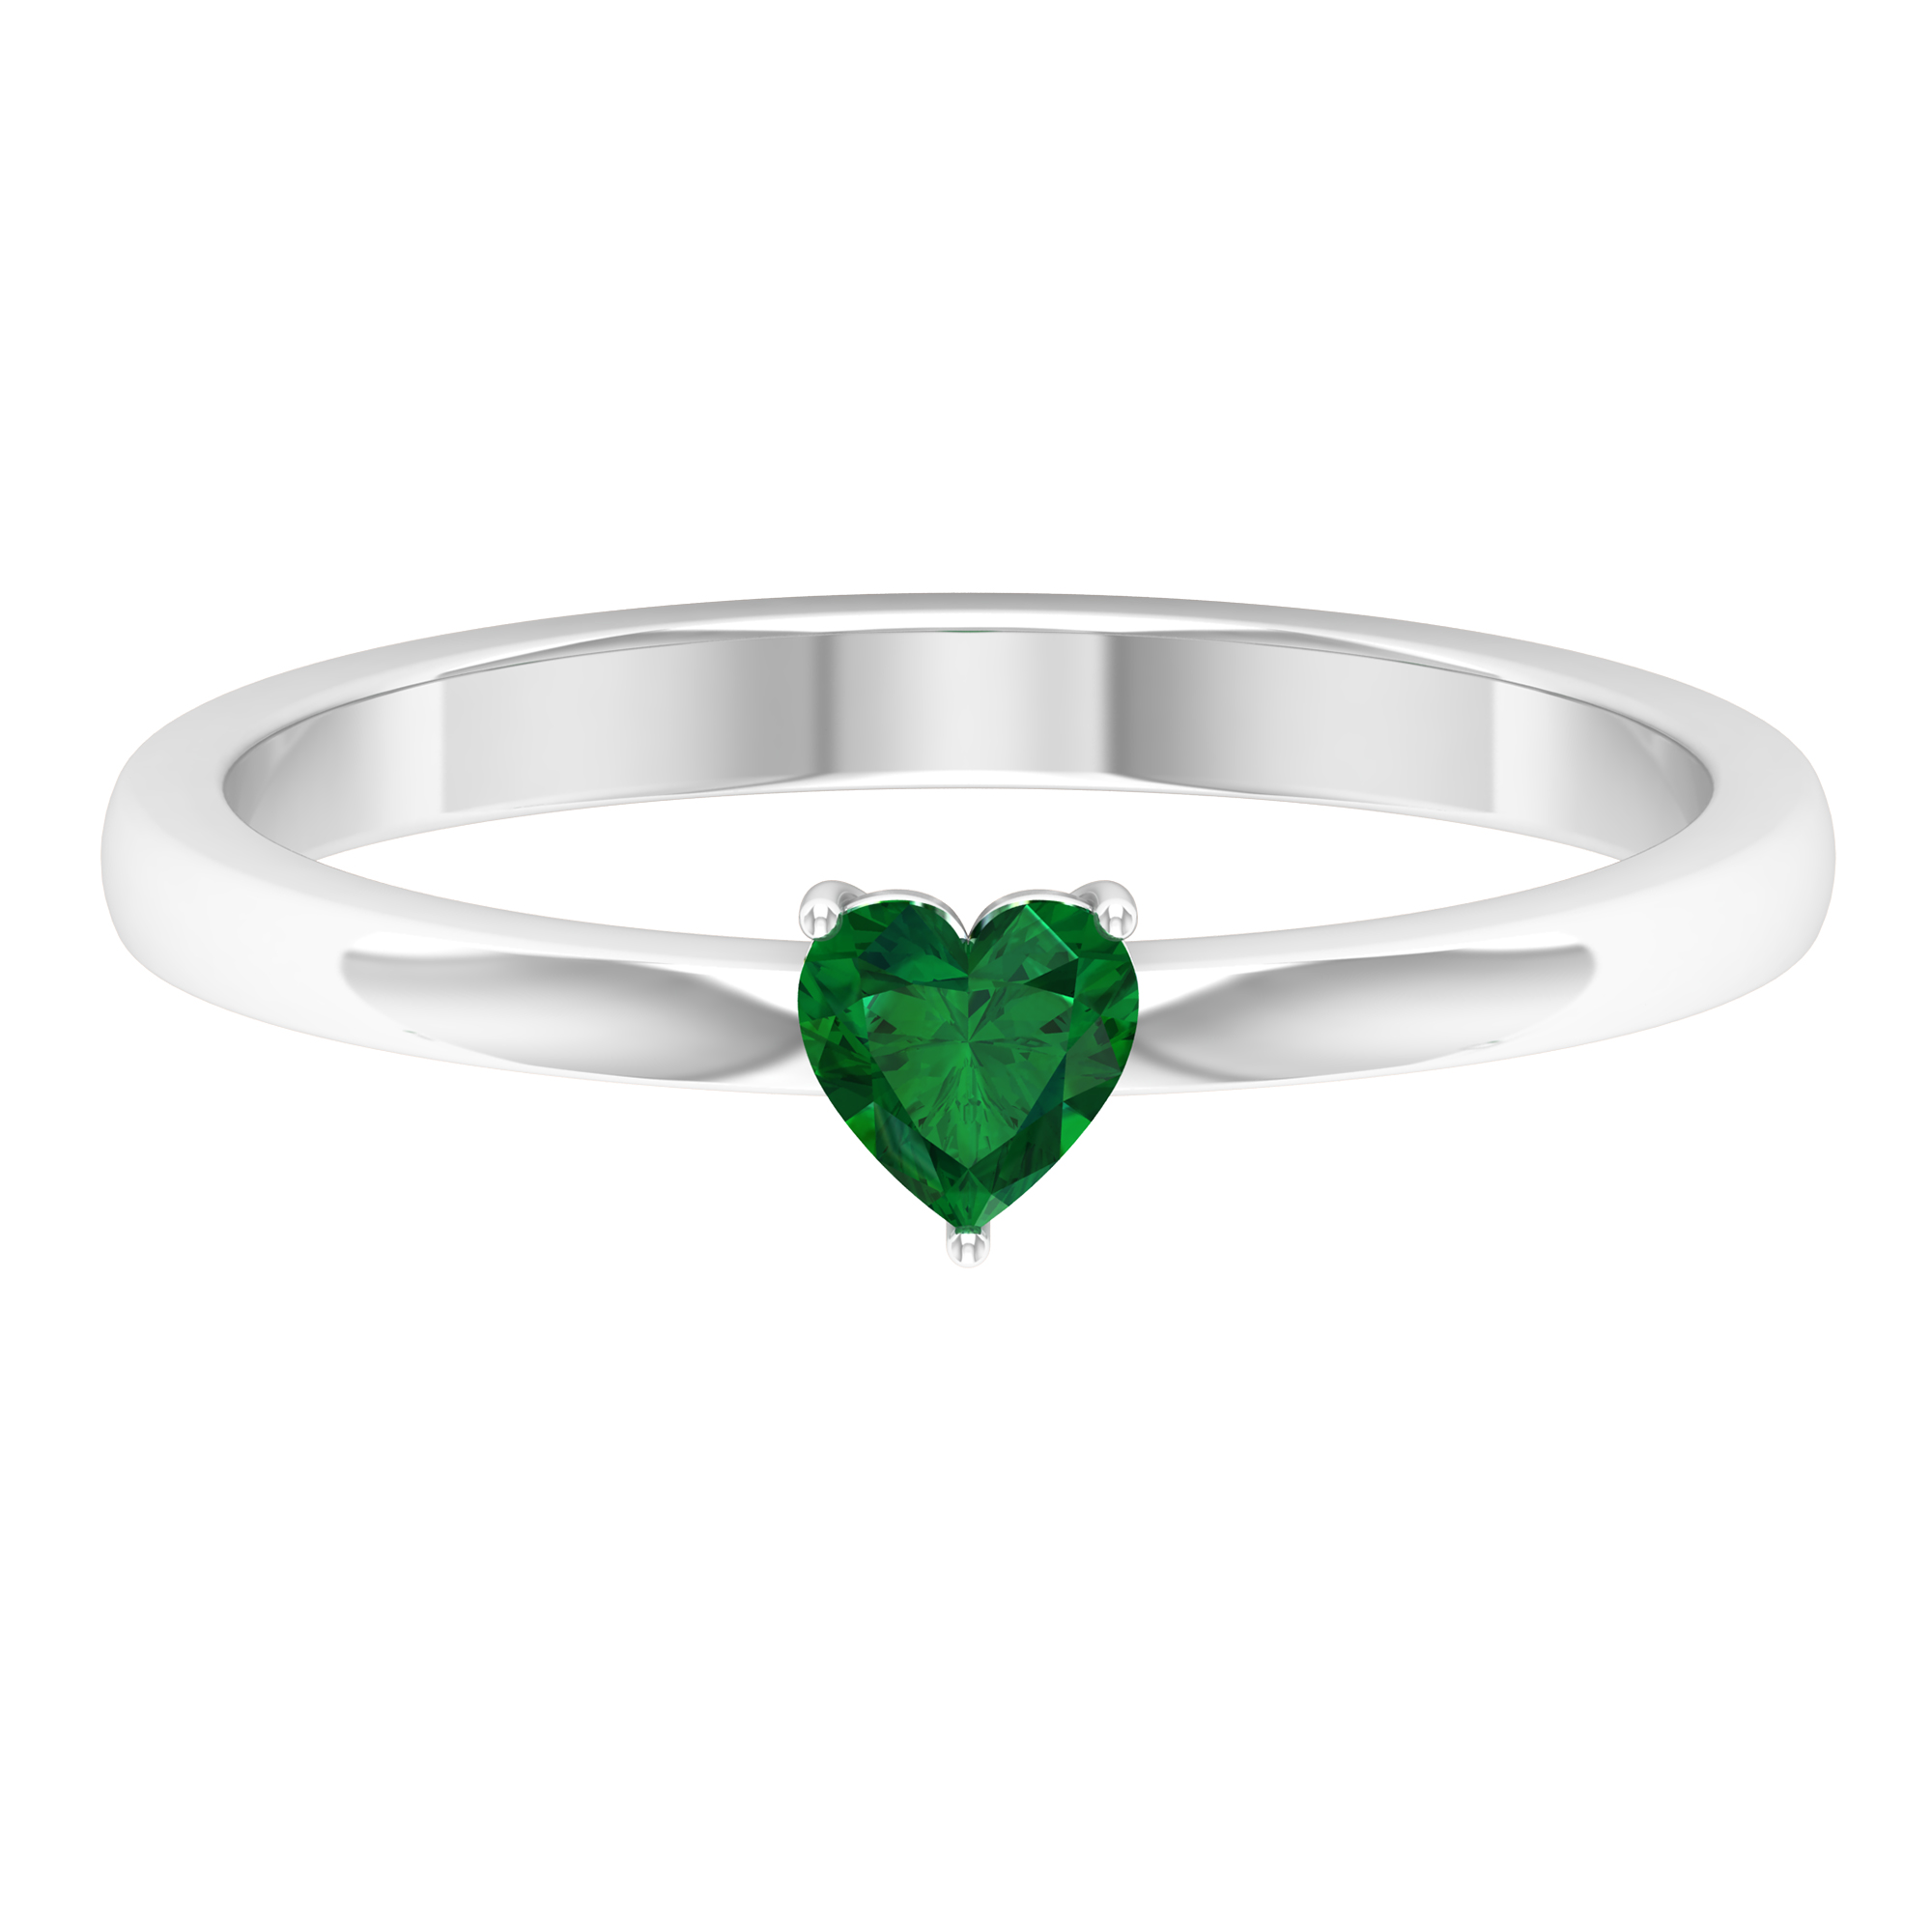 4 MM Heart Shape Emerald Solitaire Ring in 3 Prong Setting